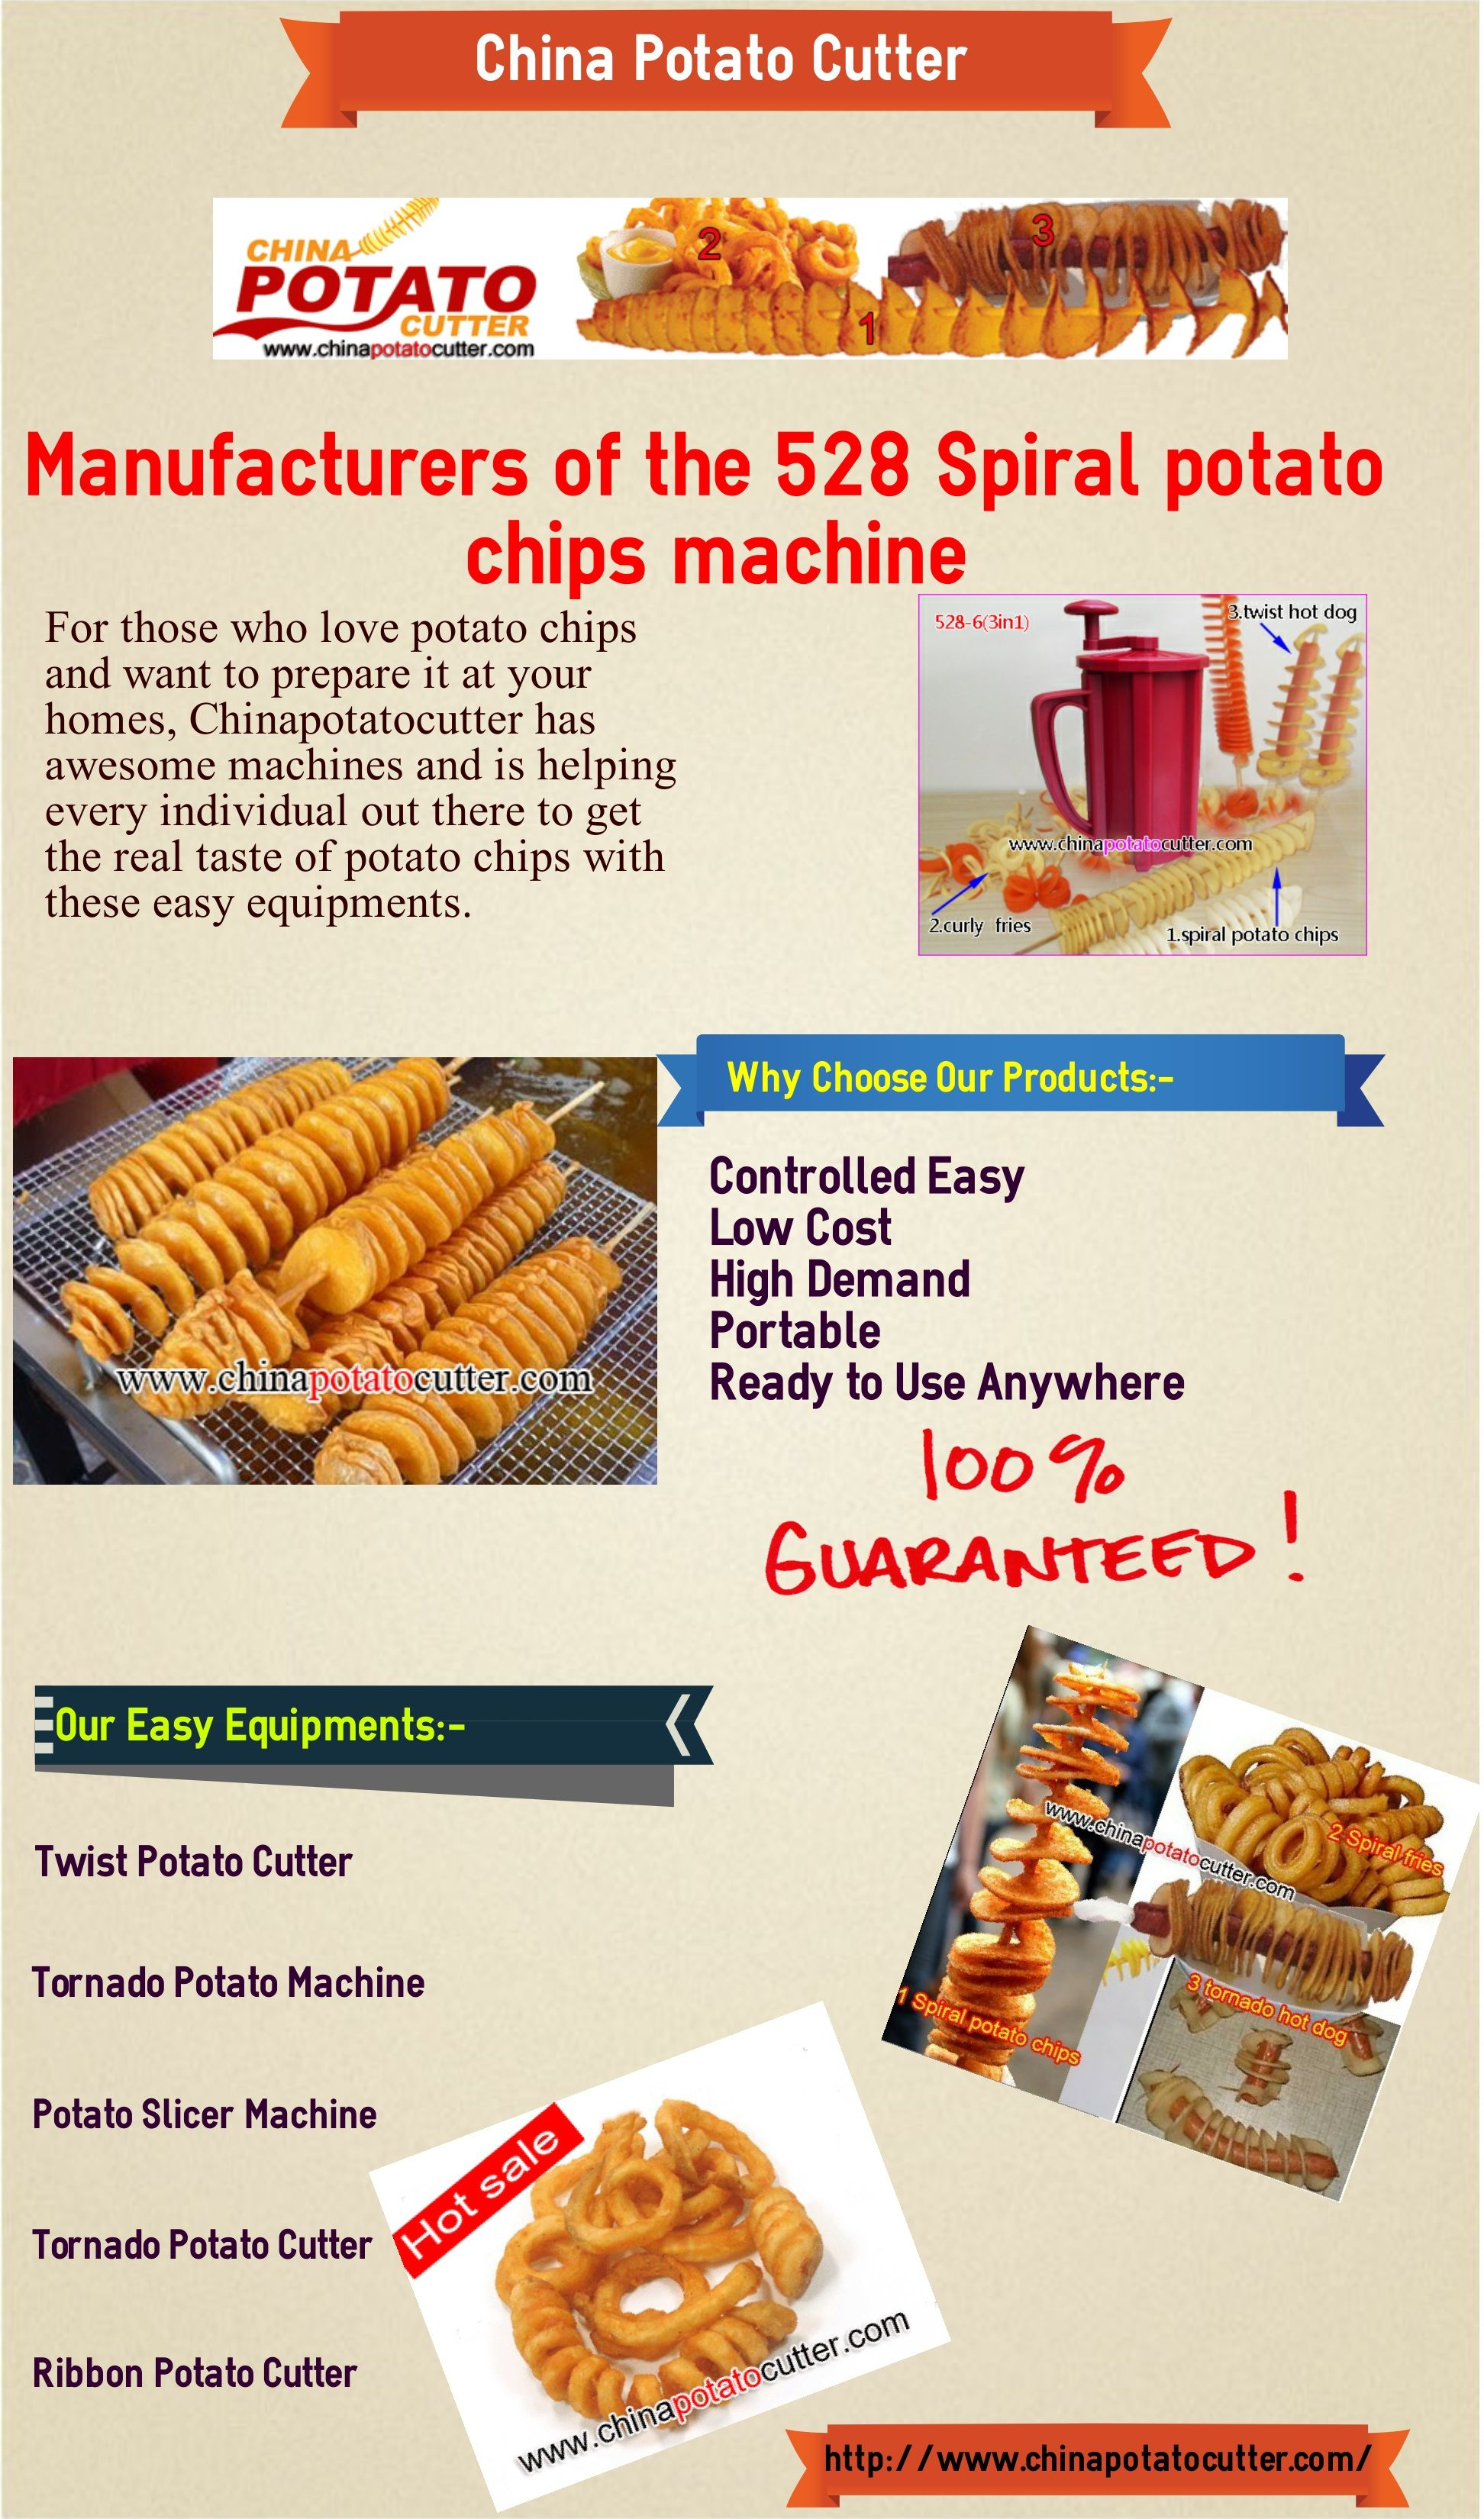 China Potato Cutter is the official designer and manufacturer of potatoes  machines. Our GrowingChip Potato